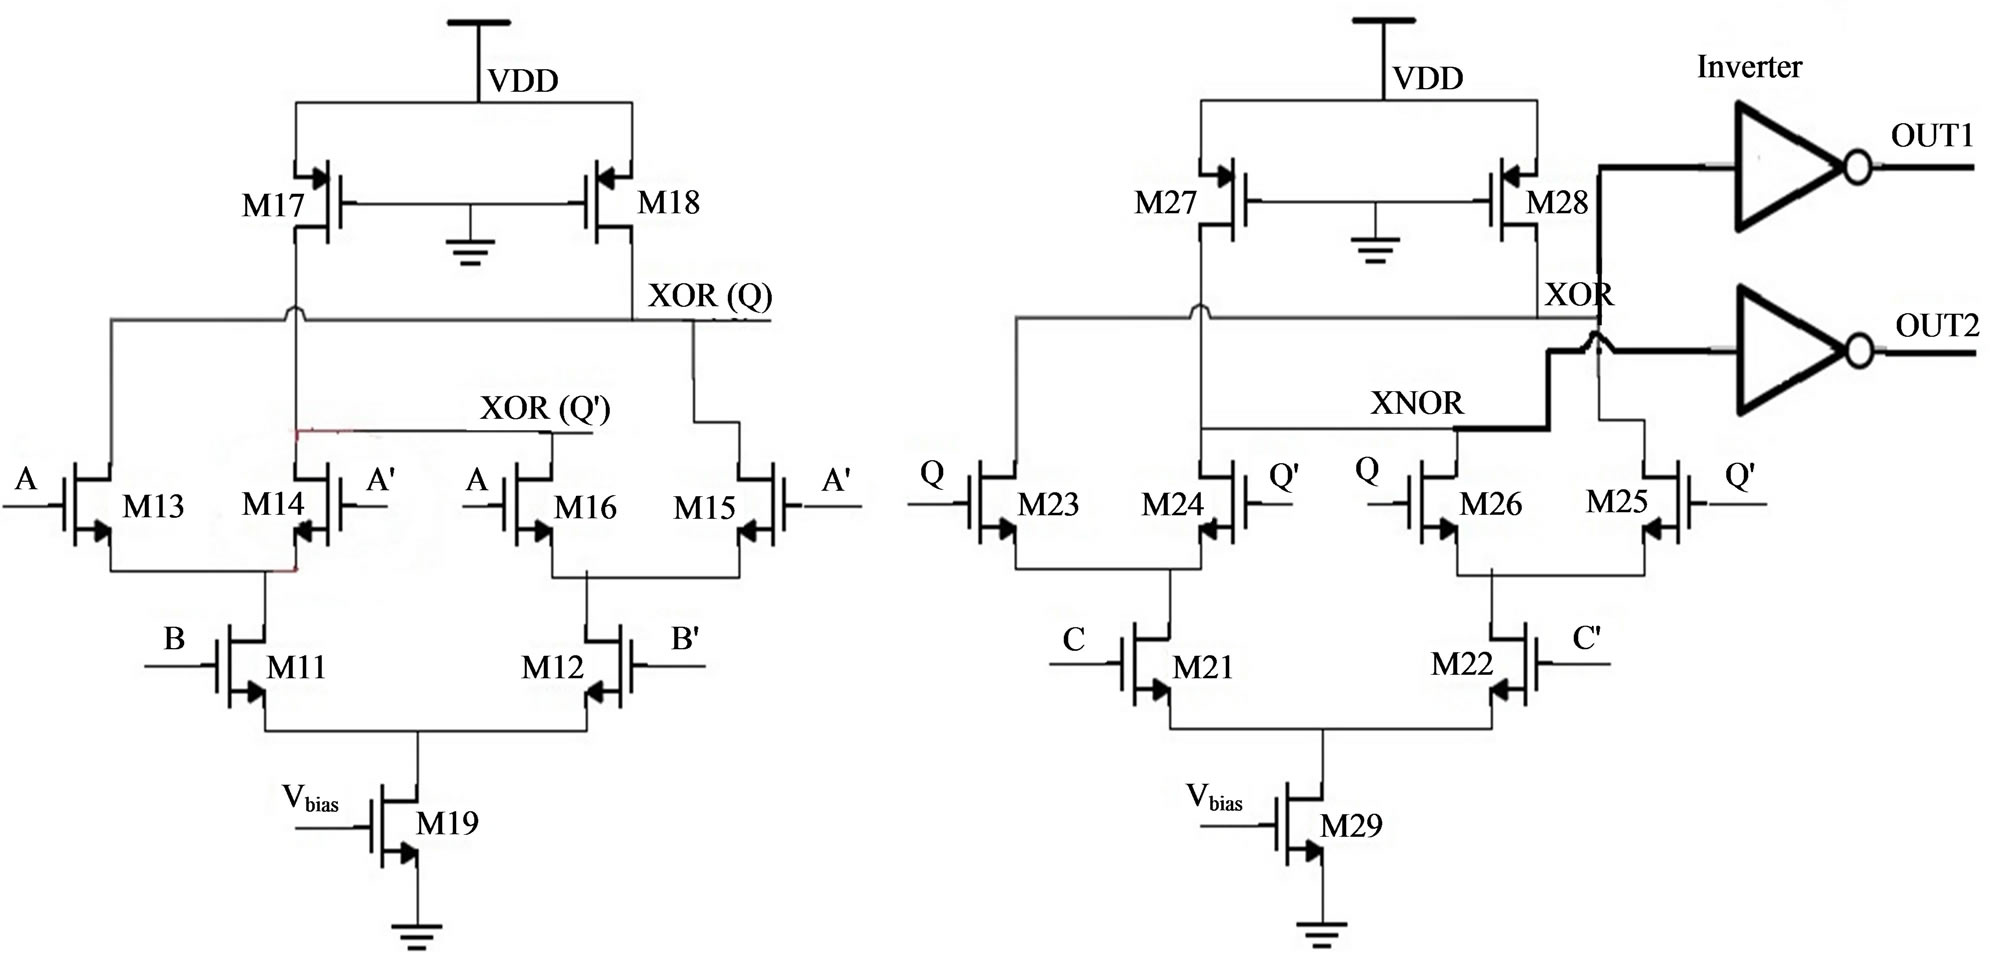 Current Mode Logic Testing of XOR XNOR Circuit A Case Study